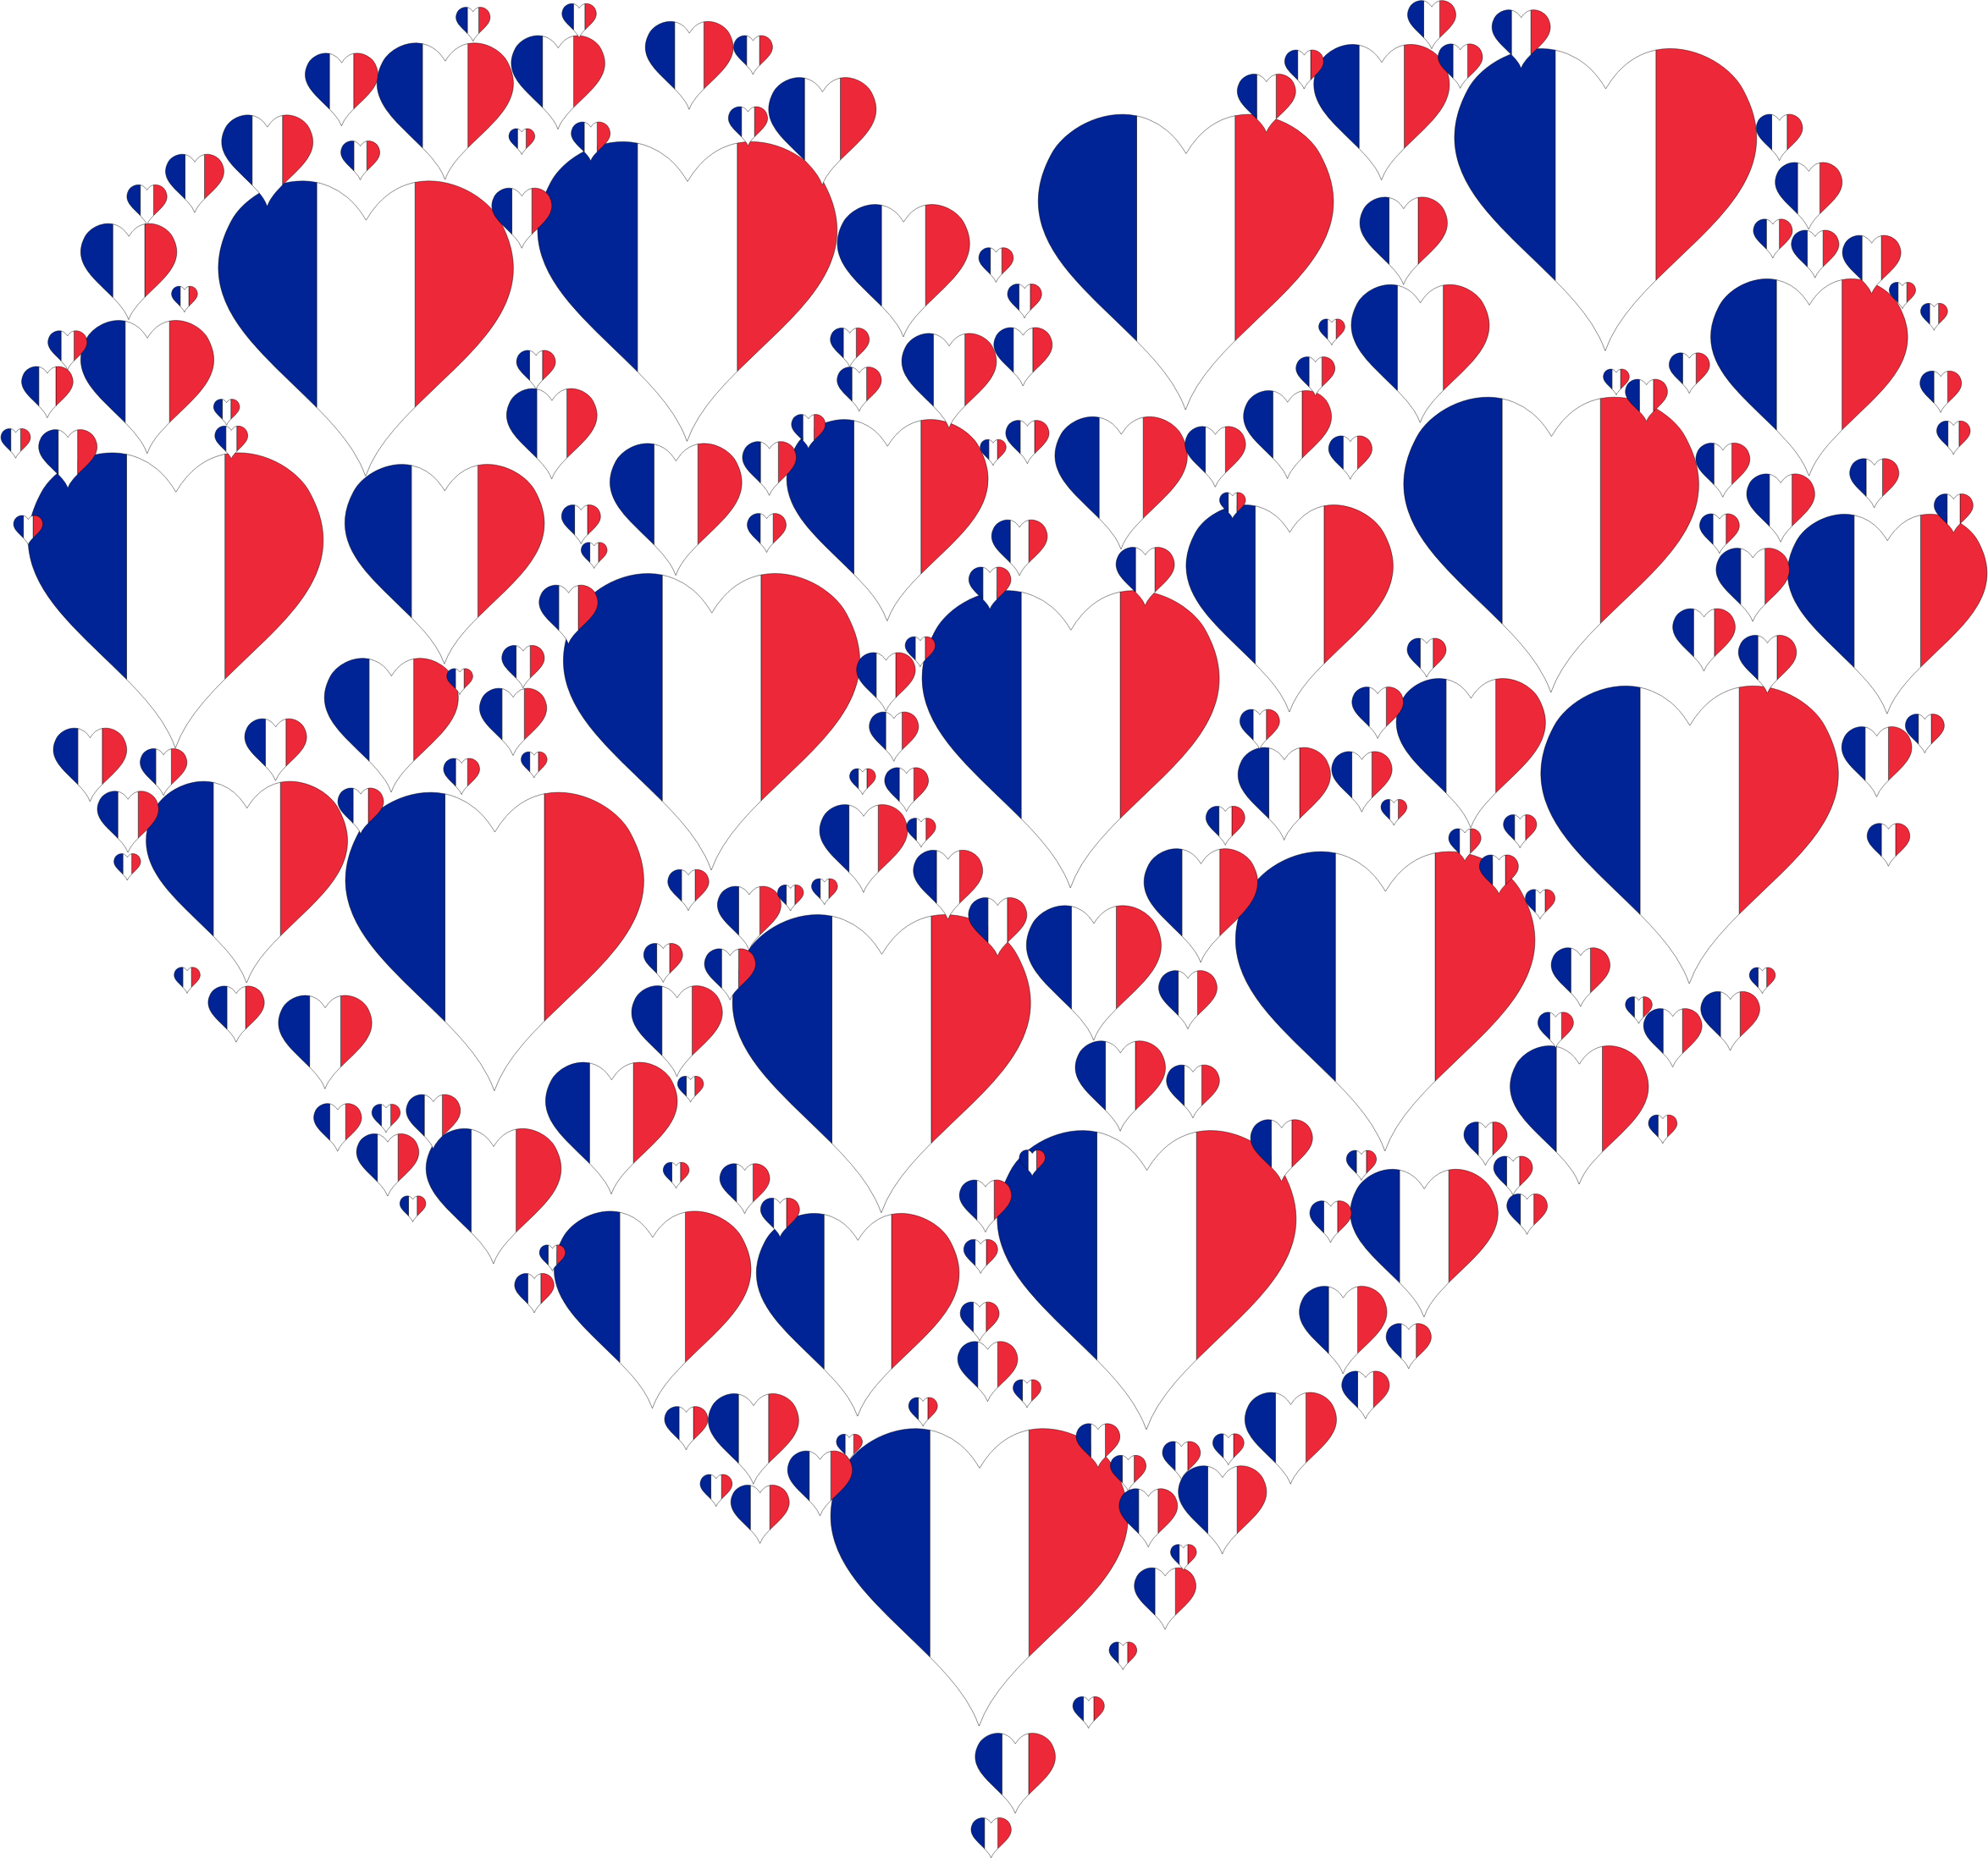 Country heart clipart banner transparent Clipart - Heart France Fractal banner transparent